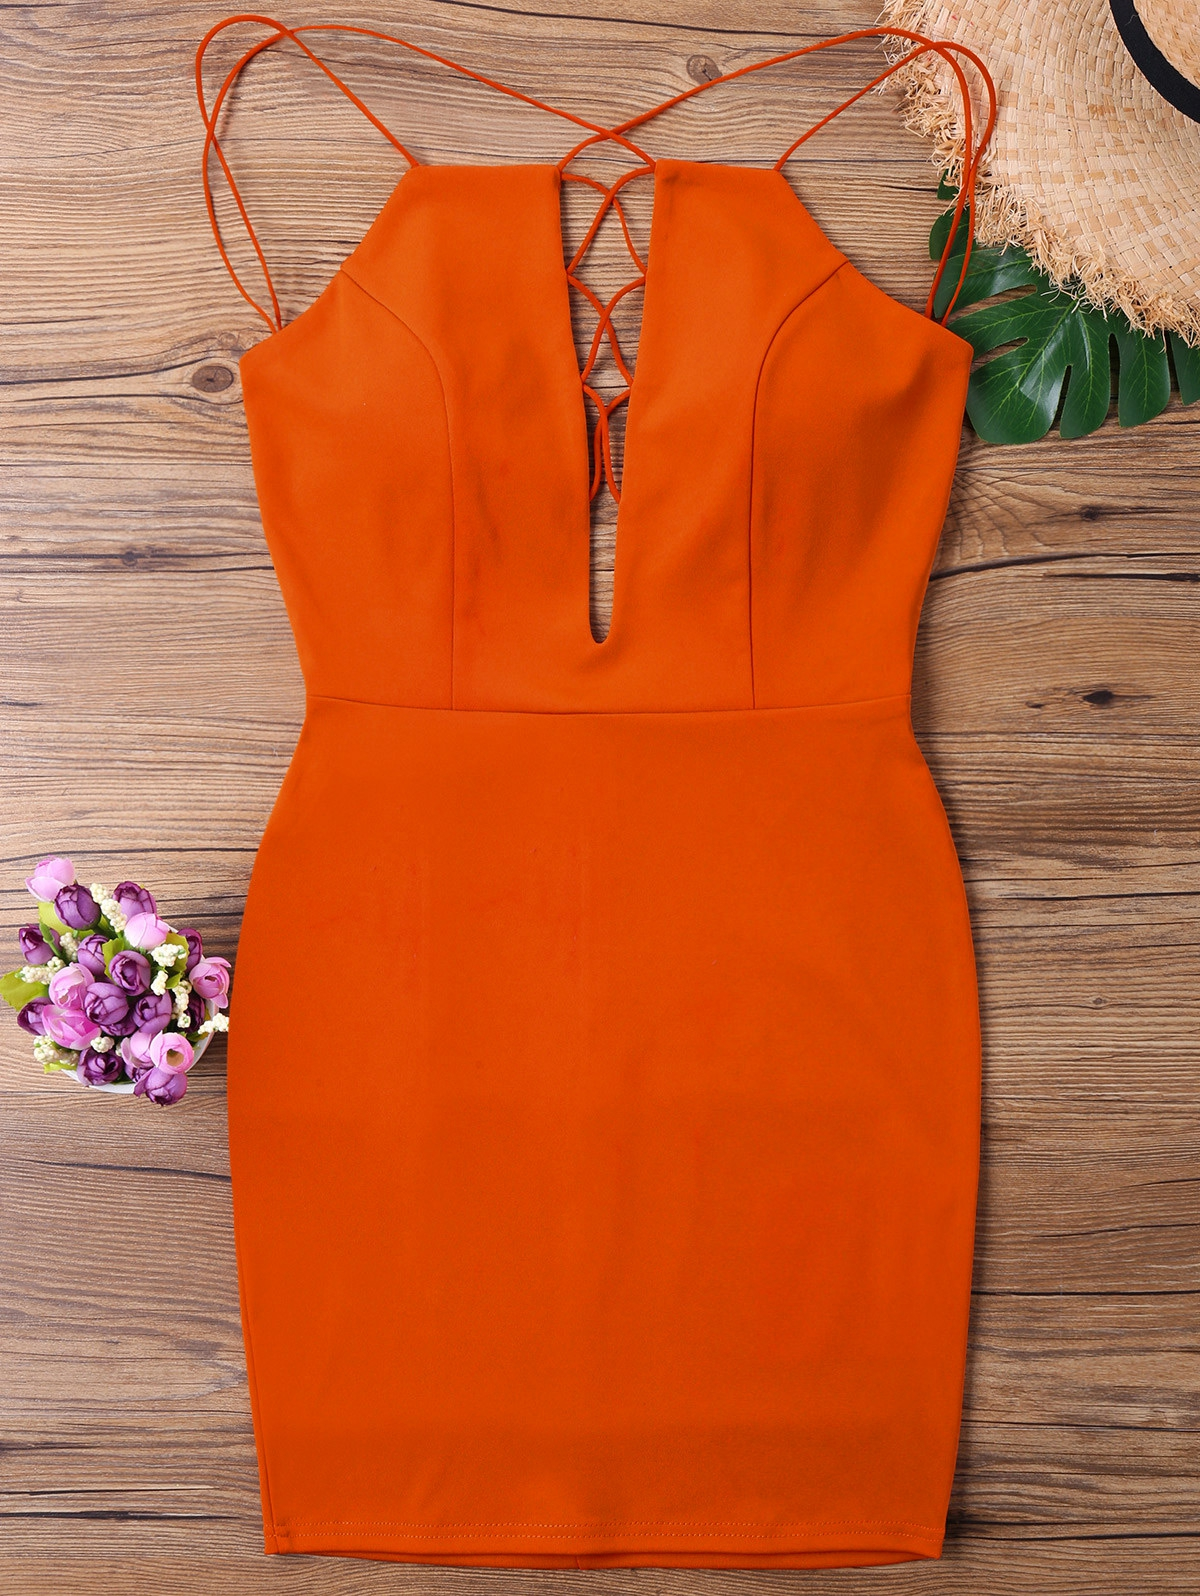 Backless Low Cut Strap